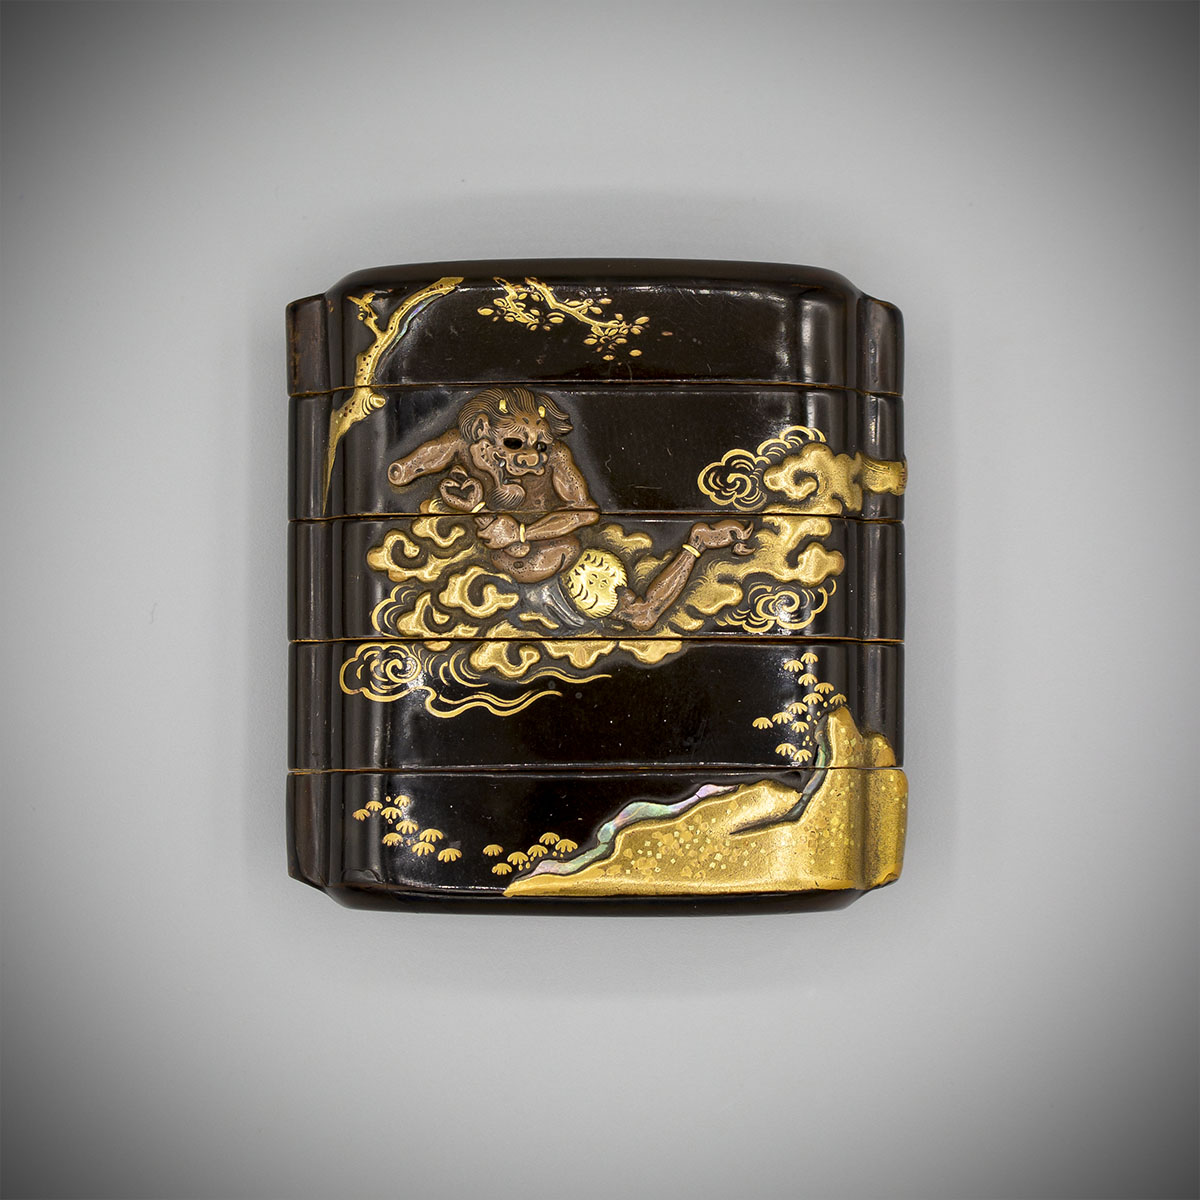 MR3854 Early Metal Inlaid Lacquer Inro recto